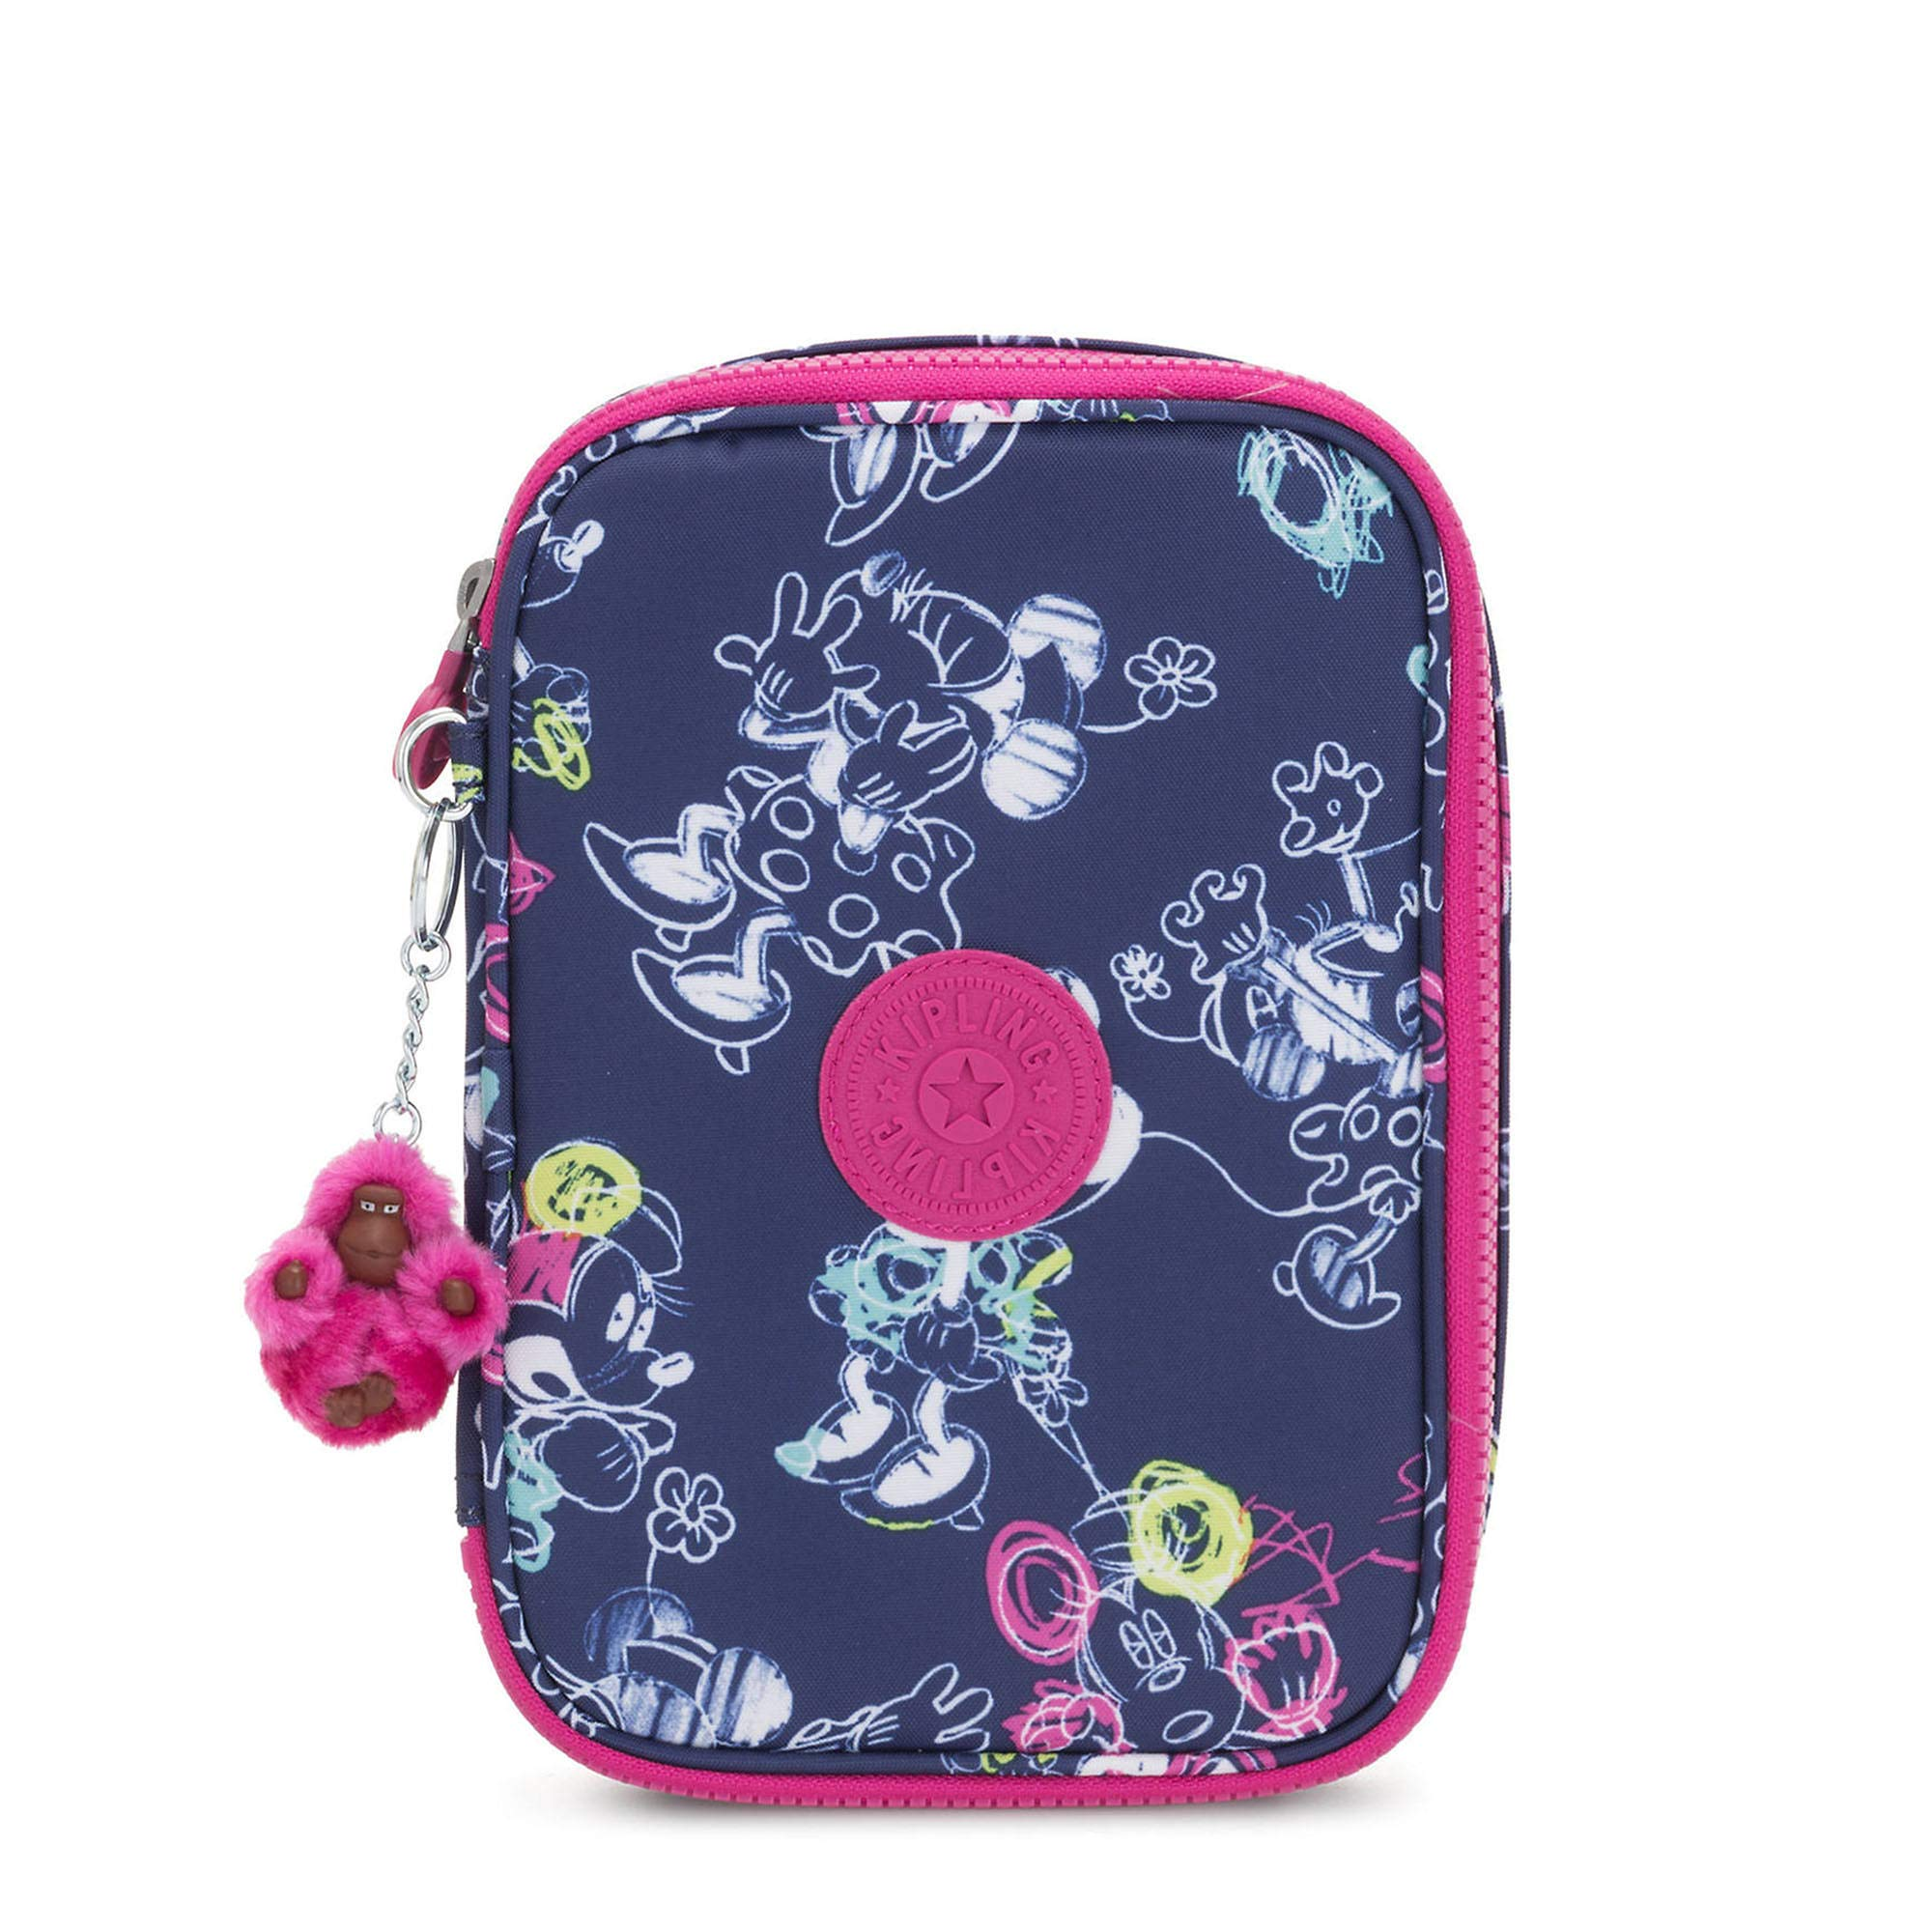 Kipling Disney's Minnie Mouse And Mickey Mouse 100 Pens Printed Case Doodle Blue by Kipling